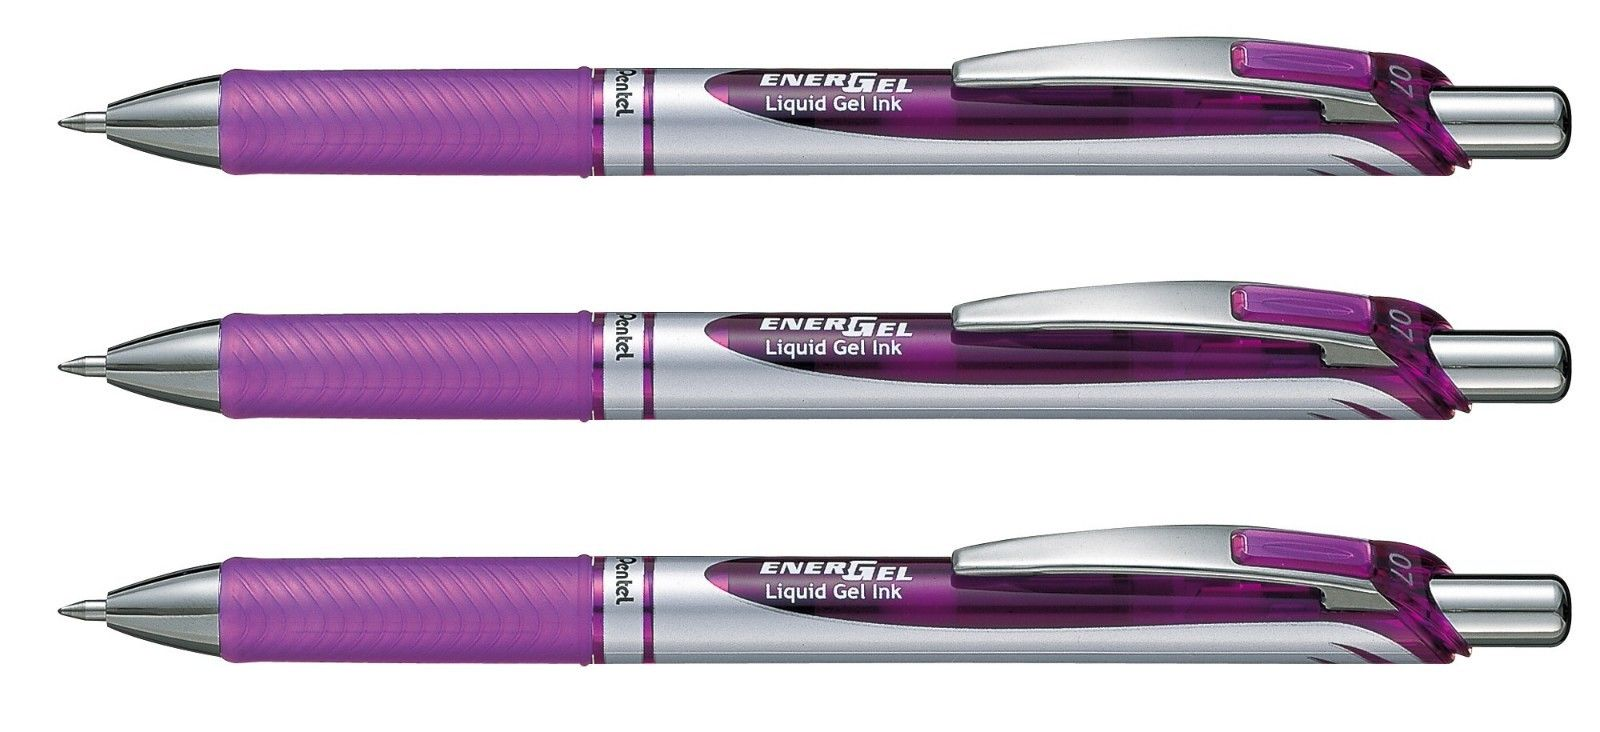 Pentel EnerGel 0.7mm Retractable Liquid Gel Roller Pen (3pcs) - Violet Ink [BL77]